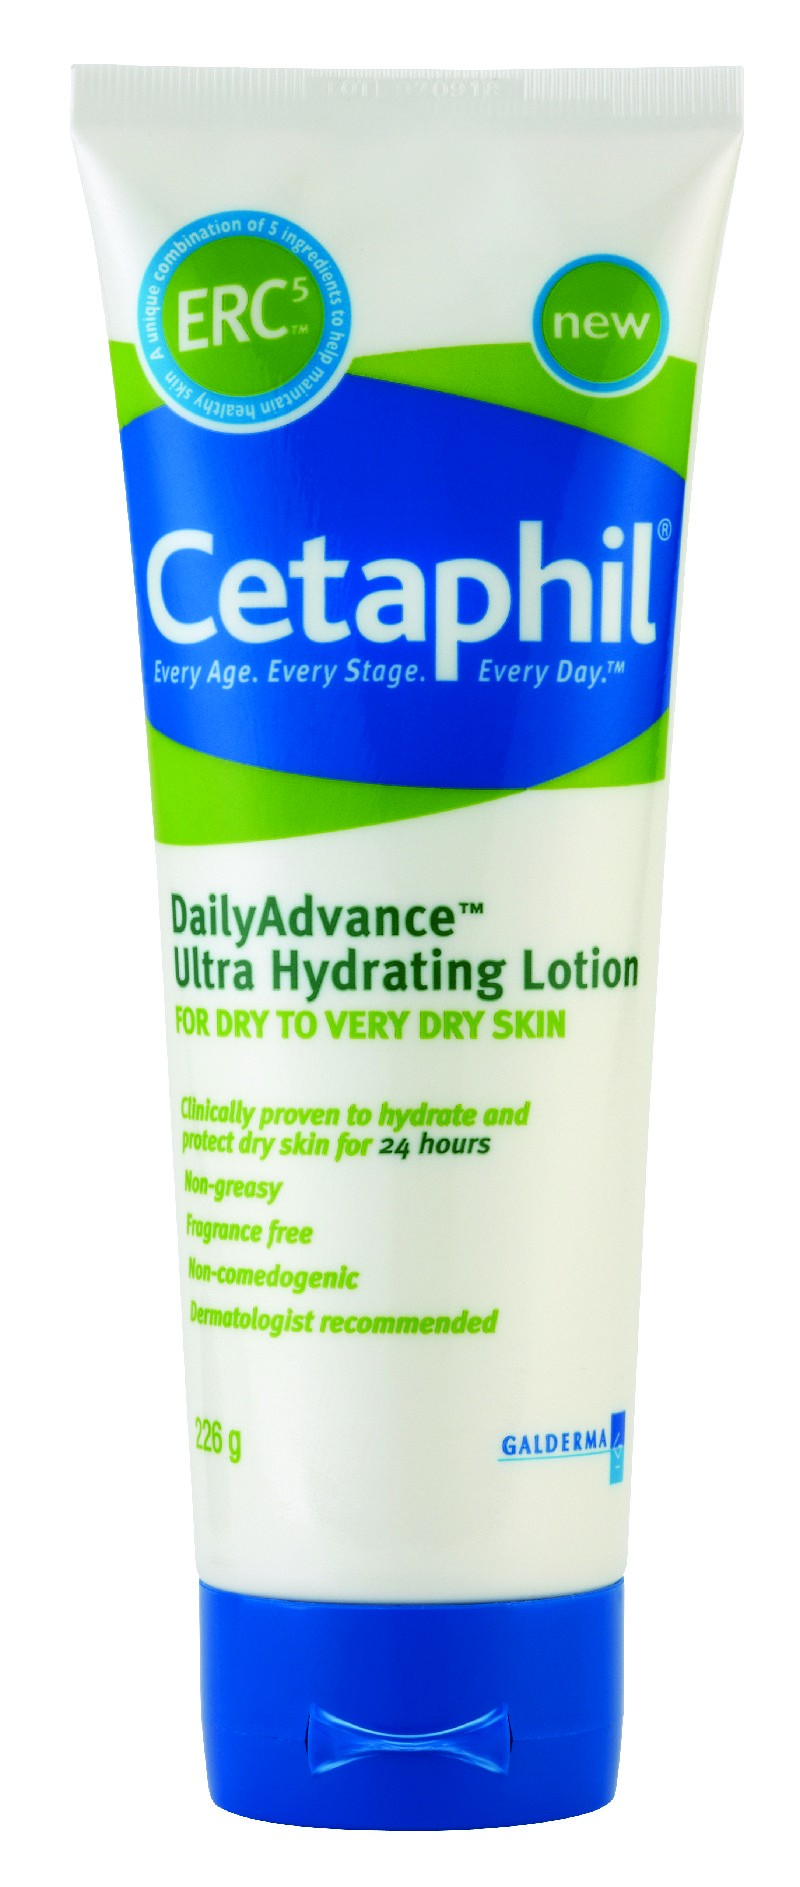 Cetaphil daily advance hydrating lotion 3oz